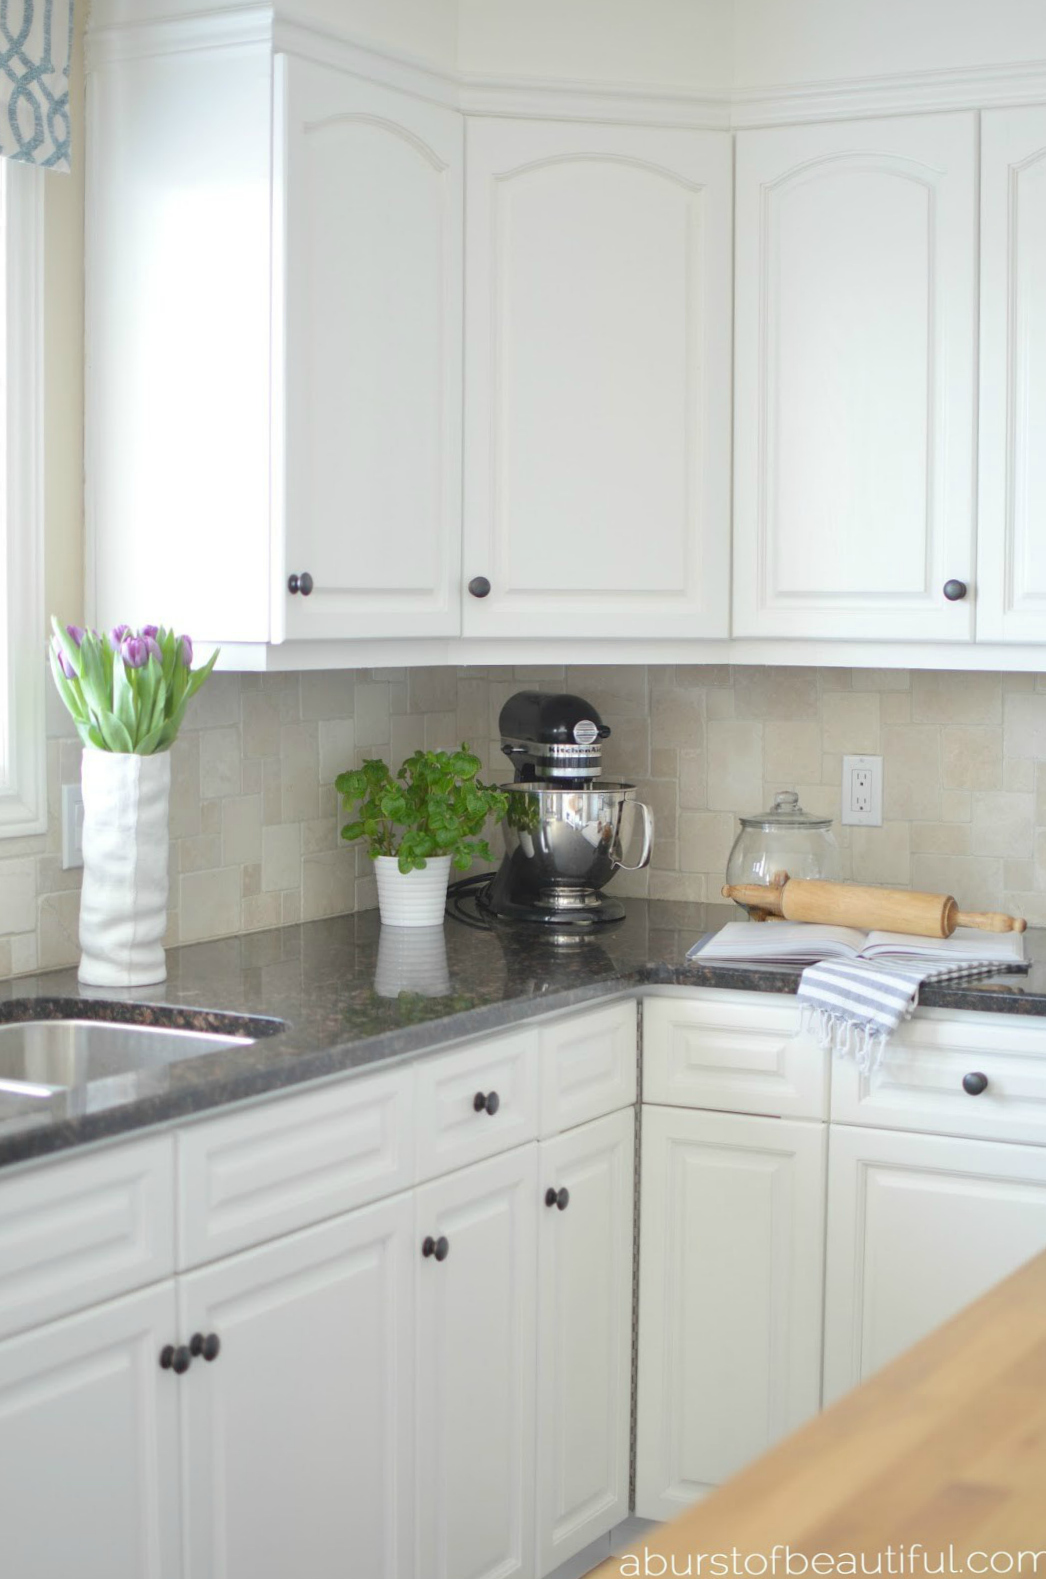 How to Paint Kitchen Cabinets - A Burst of Beautiful